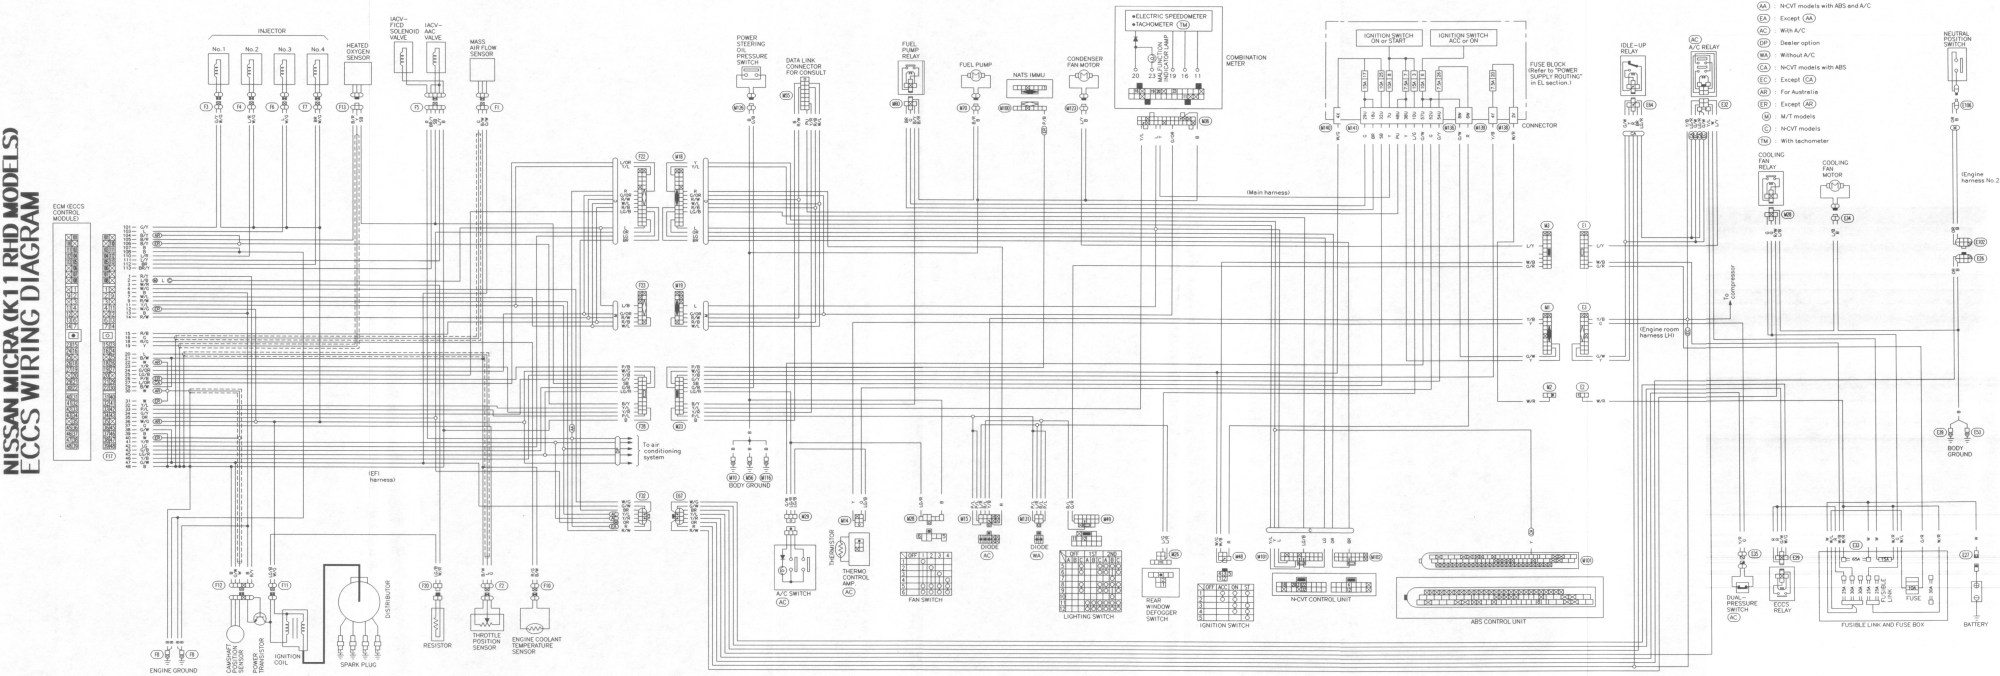 hight resolution of nissan juke wiring diagrams dogboifo k11 wiring diagram